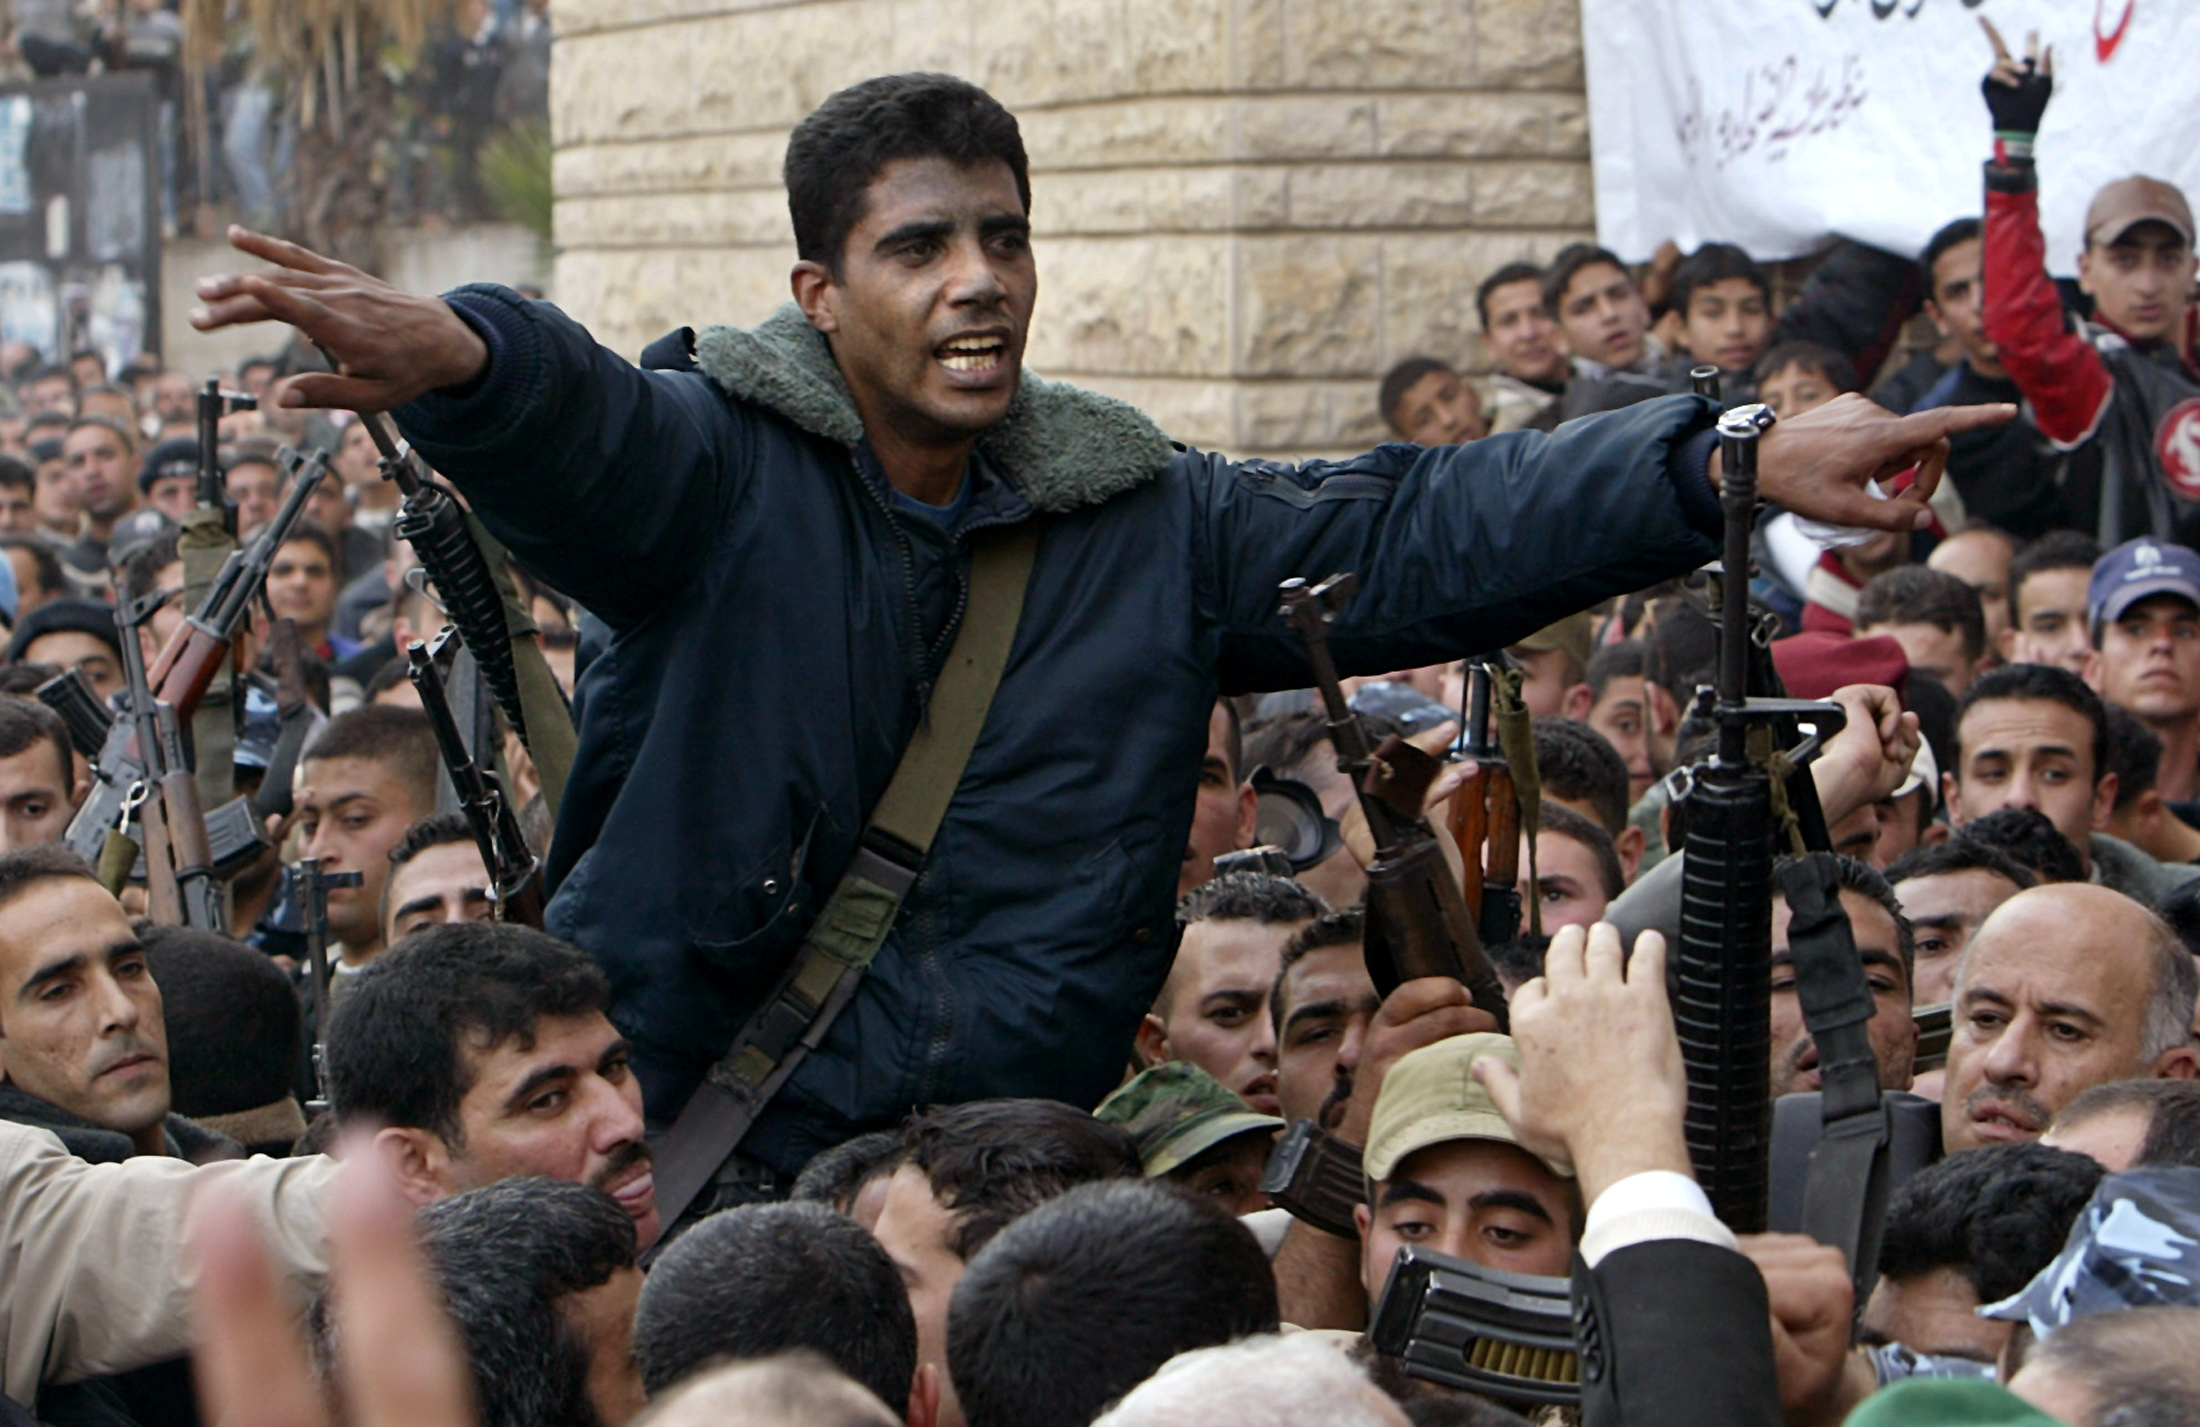 Palestinian commander of the militant Al Aqsa Martyrs Brigades Zakaria Zubeid is carried on the shoulders of supporters in Jenin, in the Israeli-occupied West Bank December 30, 2004.  REUTERS/Ammar Awad